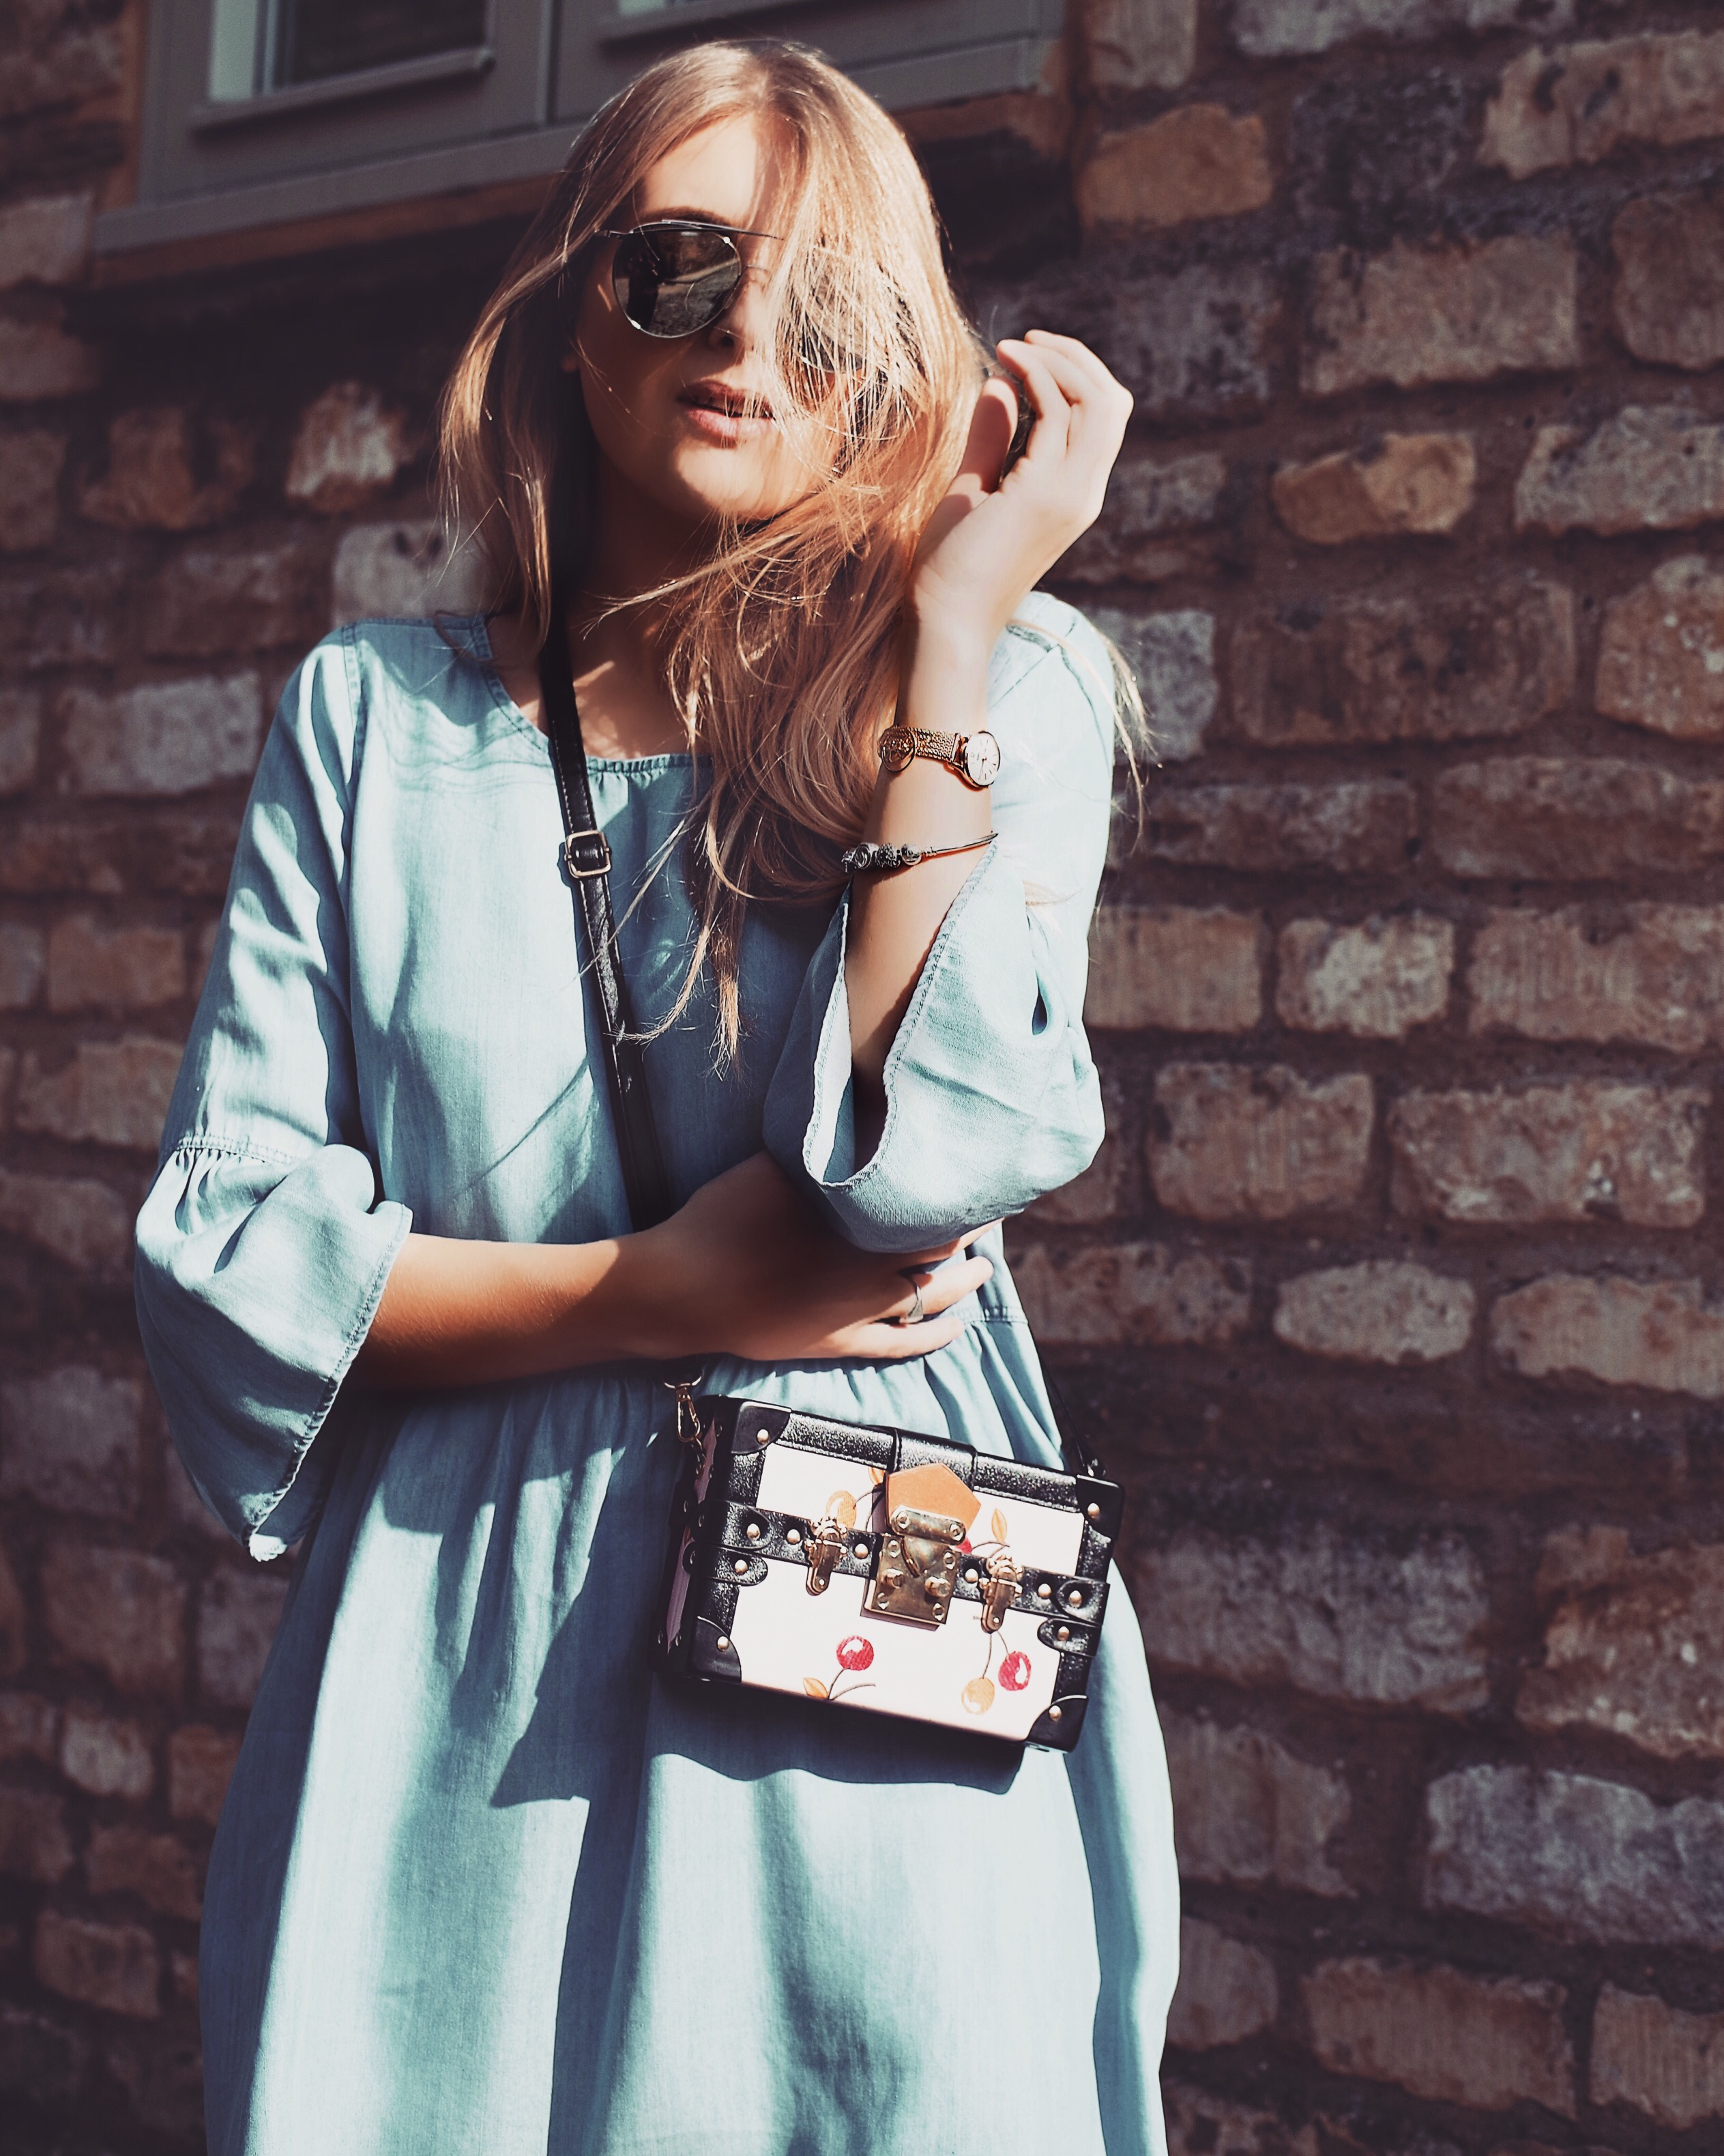 Lfw Streetstyle Trying Something New Love Style Mindfulness Fashion Personal Style Blog